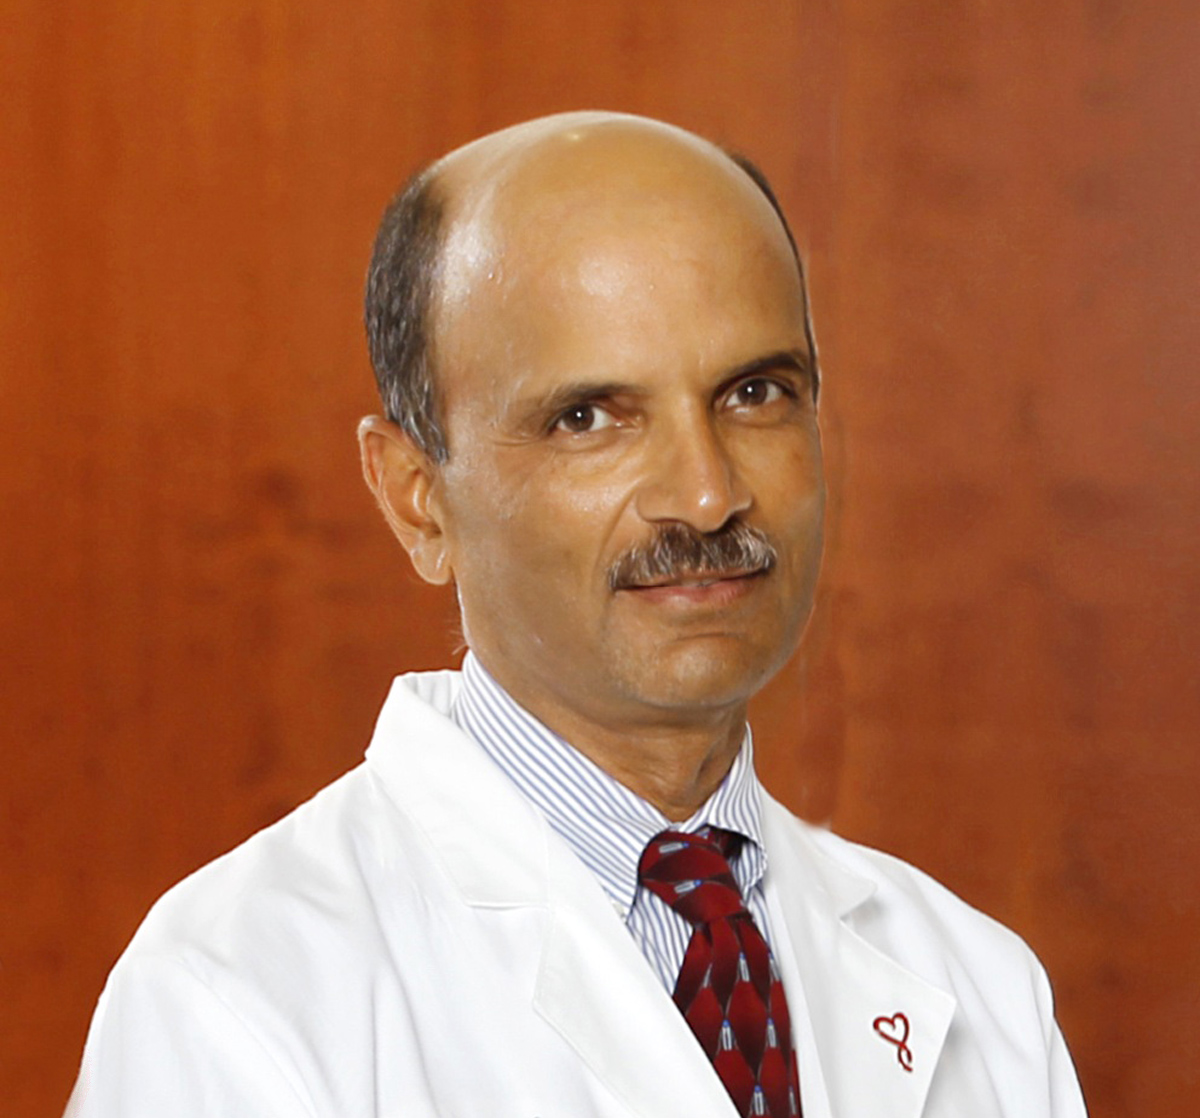 Dr. Rakesh Jain, MD